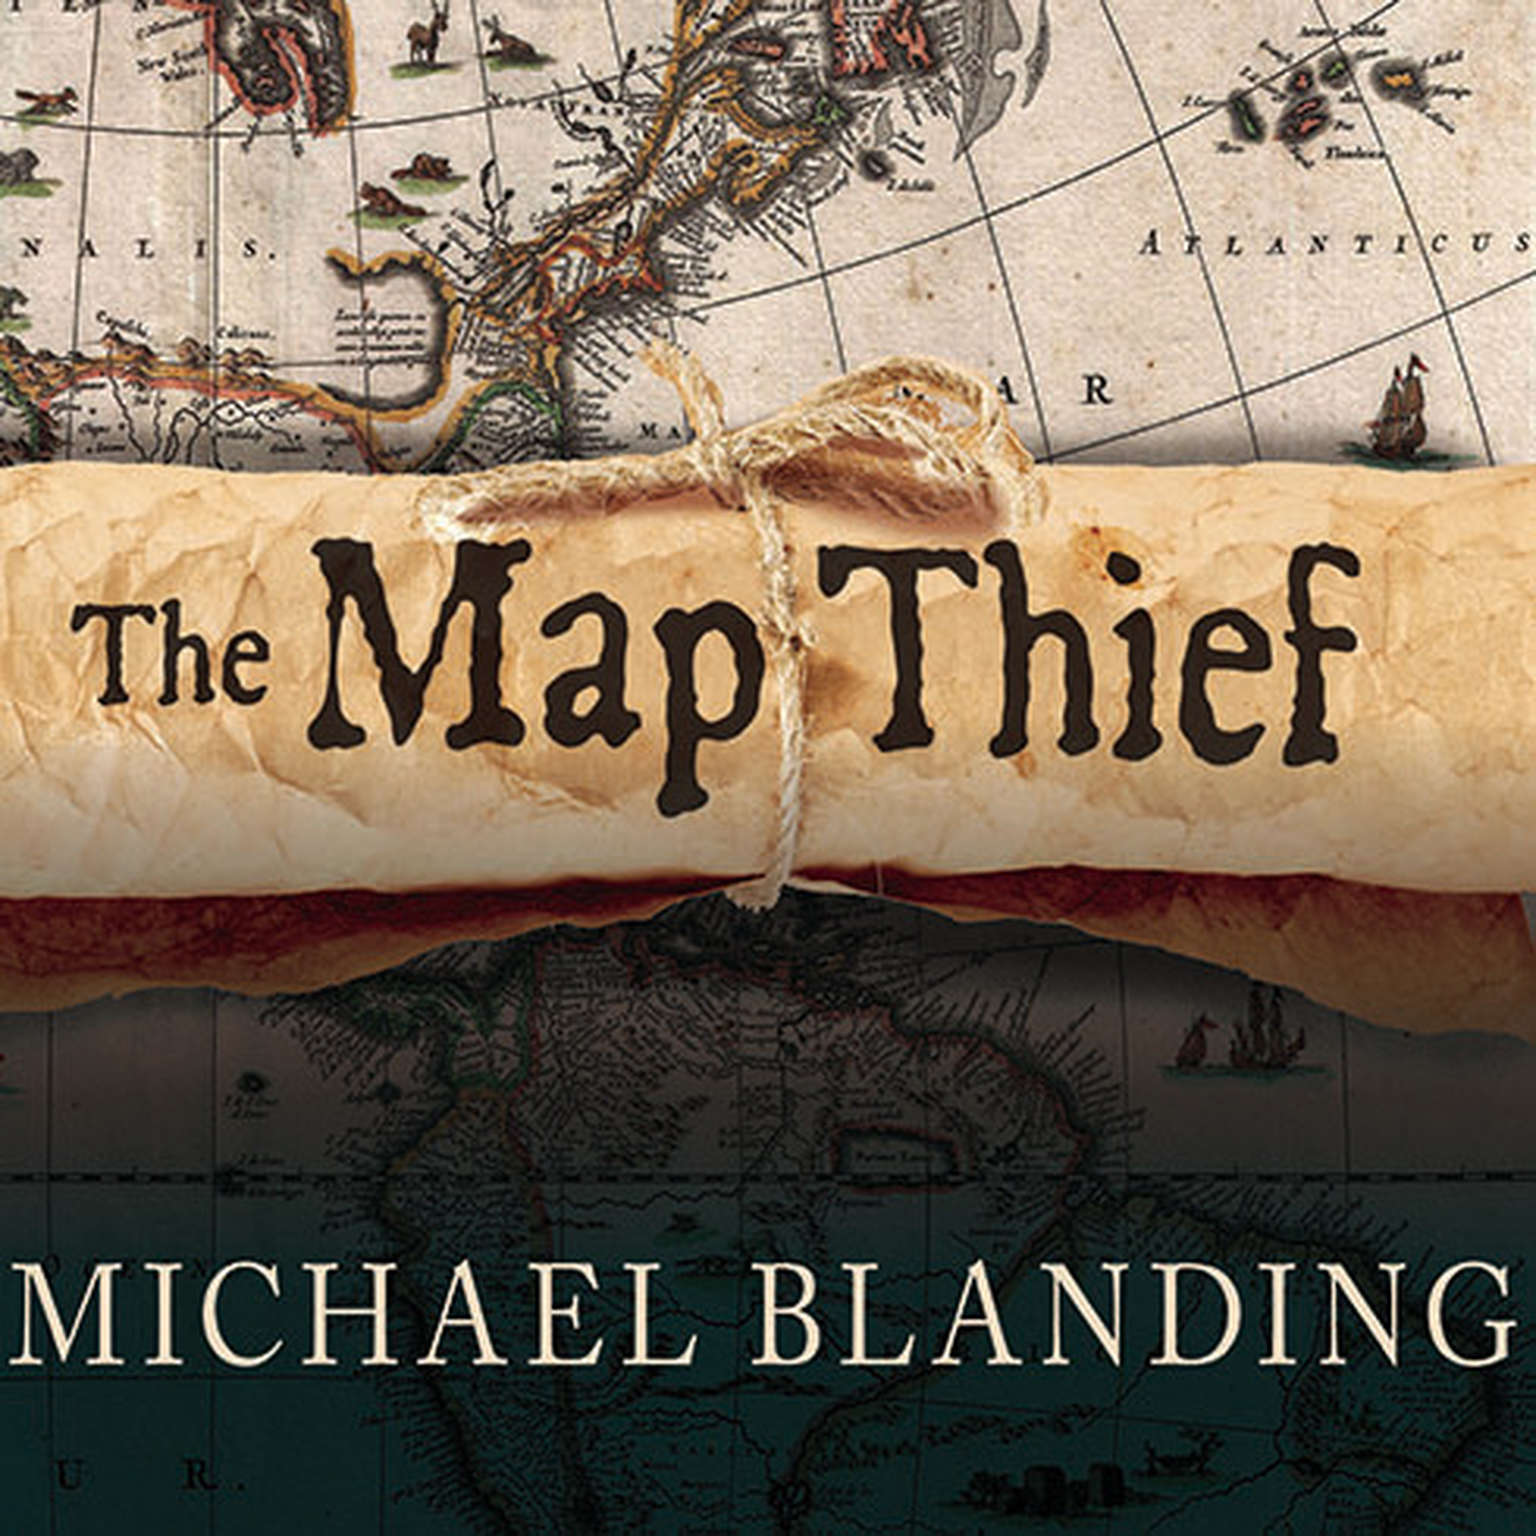 Printable The Map Thief: The Gripping Story of an Esteemed Rare-map Dealer Who Made Millions Stealing Priceless Maps Audiobook Cover Art